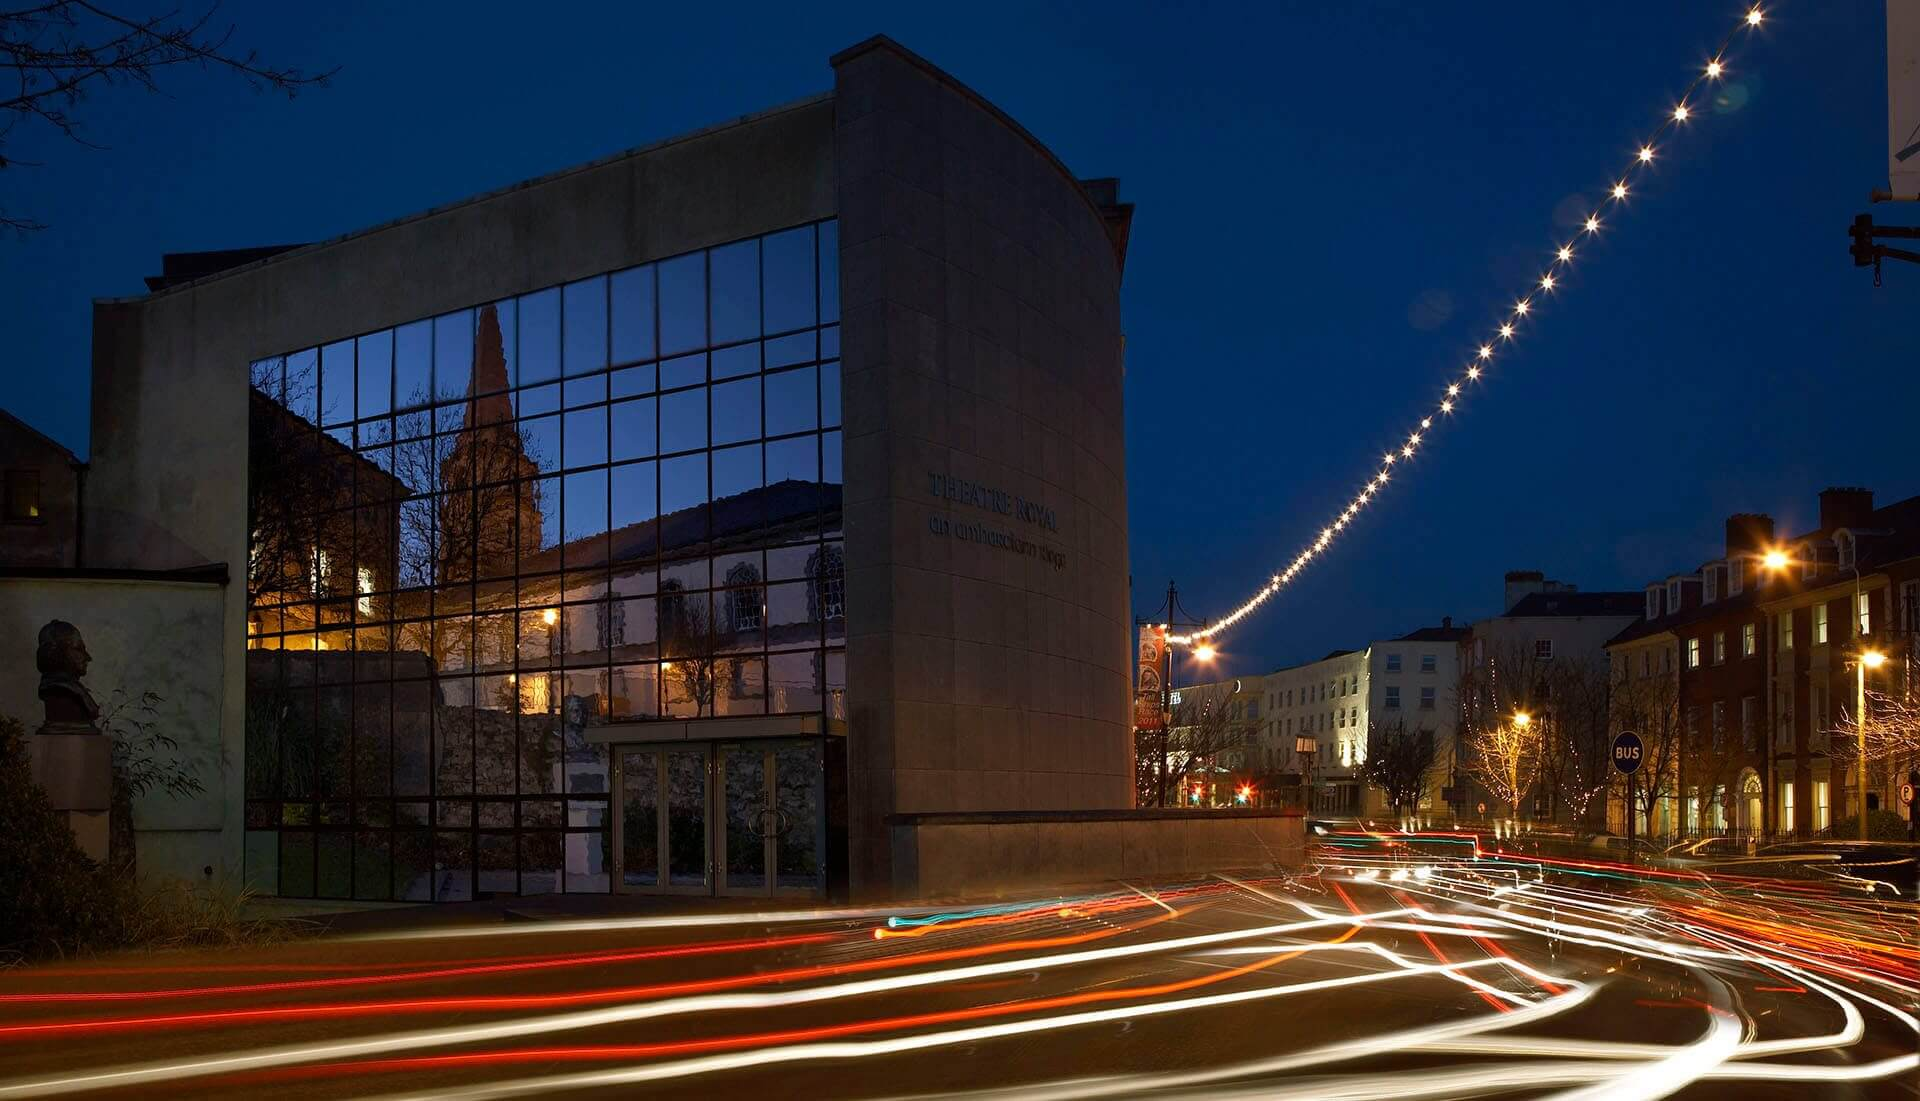 Theatre Royal, & Waterford City Hall, The Mall, Co. Waterford, Ireland